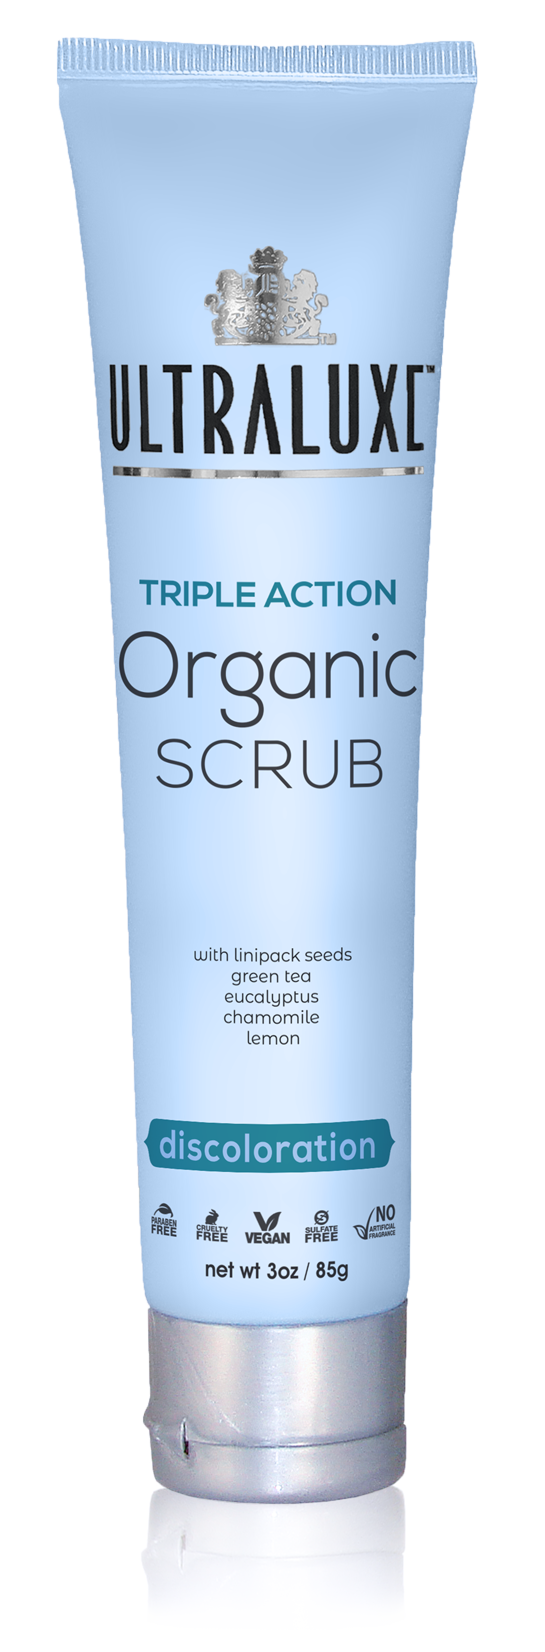 Triple Action Organic Scrub - Discoloration